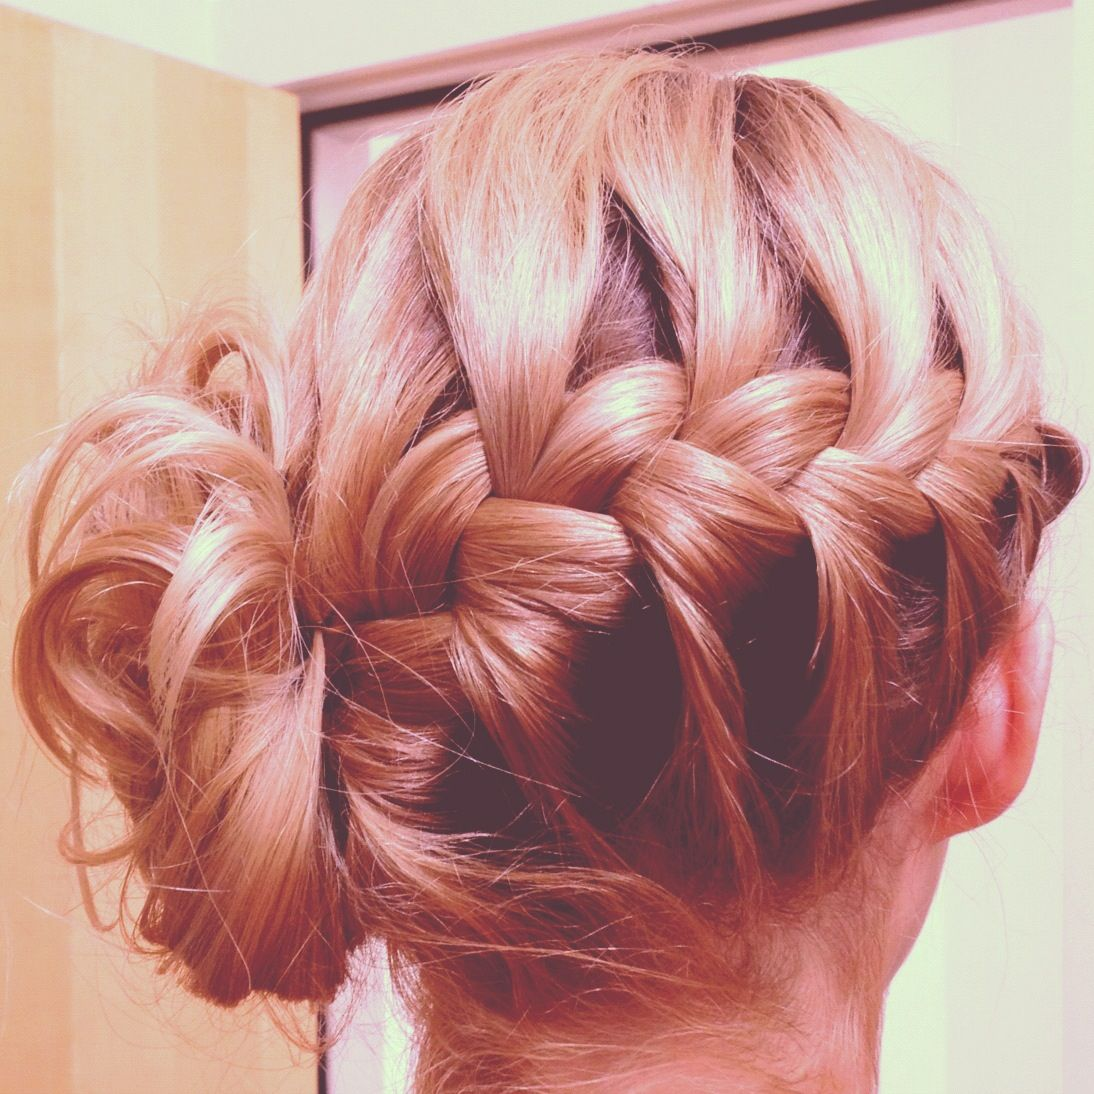 Bridesmaid hair. French braid updo | Weddings and parties ...